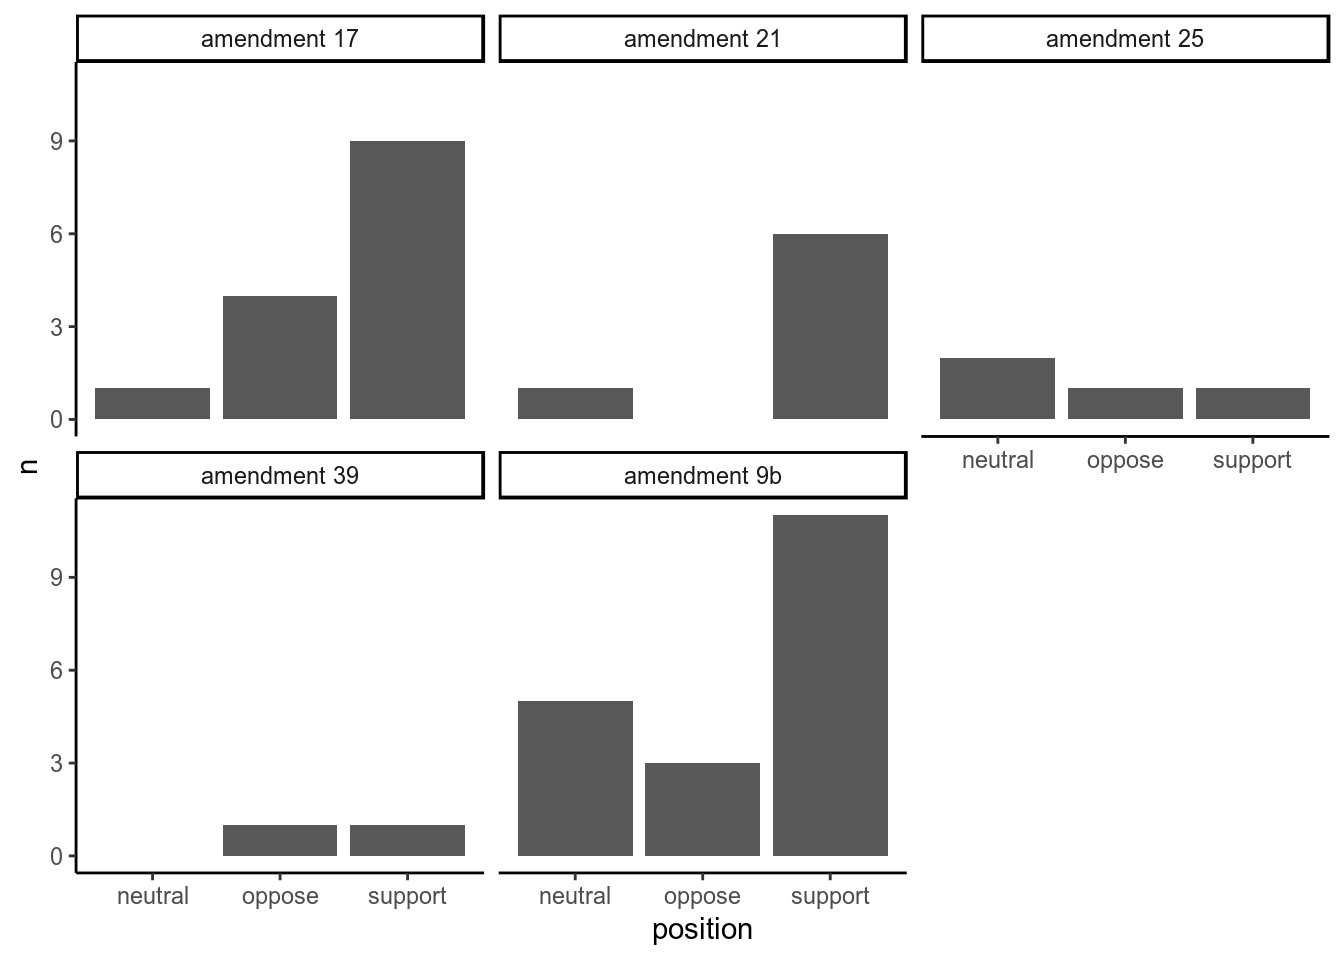 Measuring support versus opposition for each amendment based on sentences containing the word 'amendment'